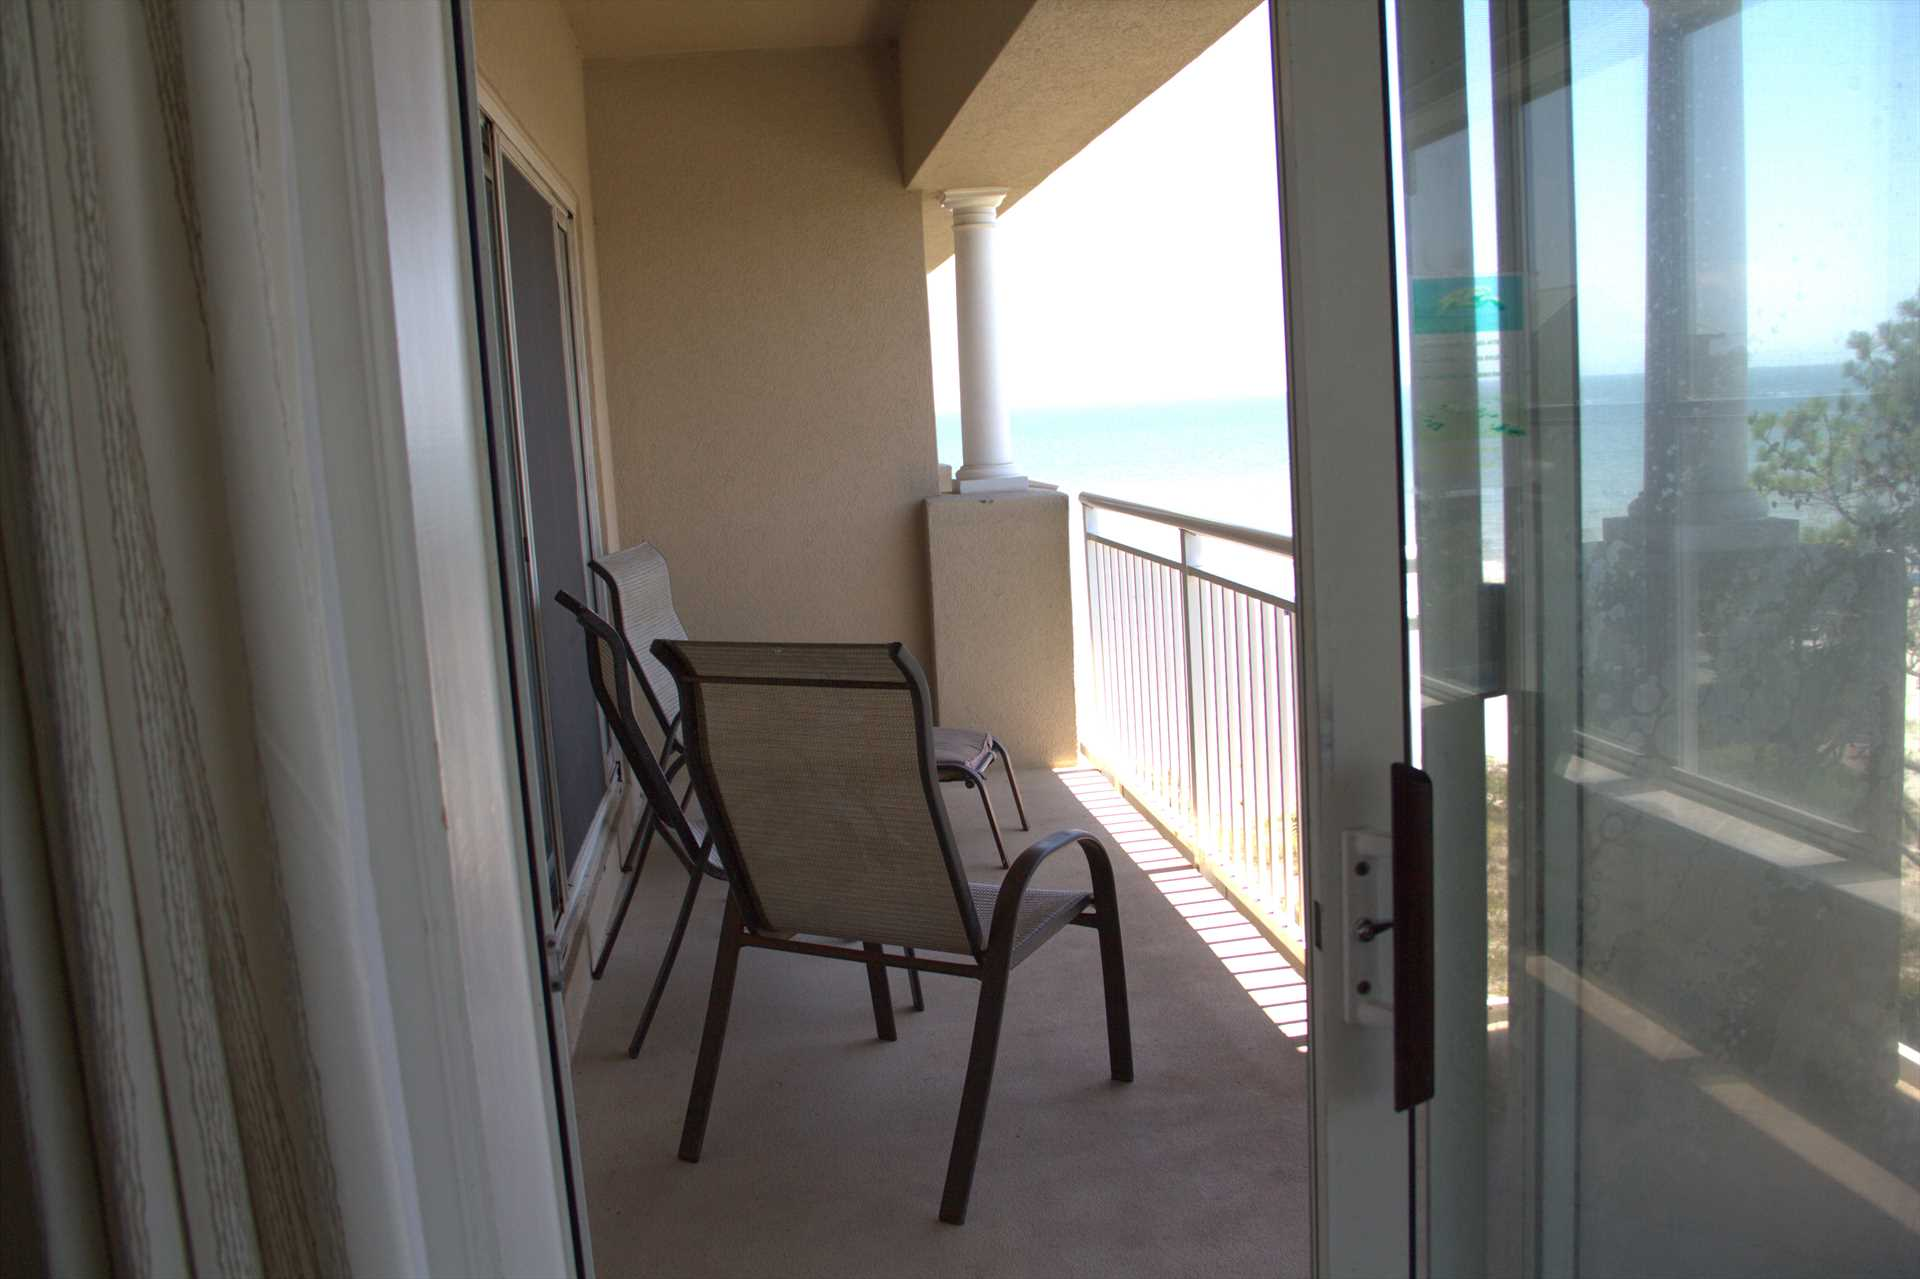 This balcony can be reached from the great room or the ocean